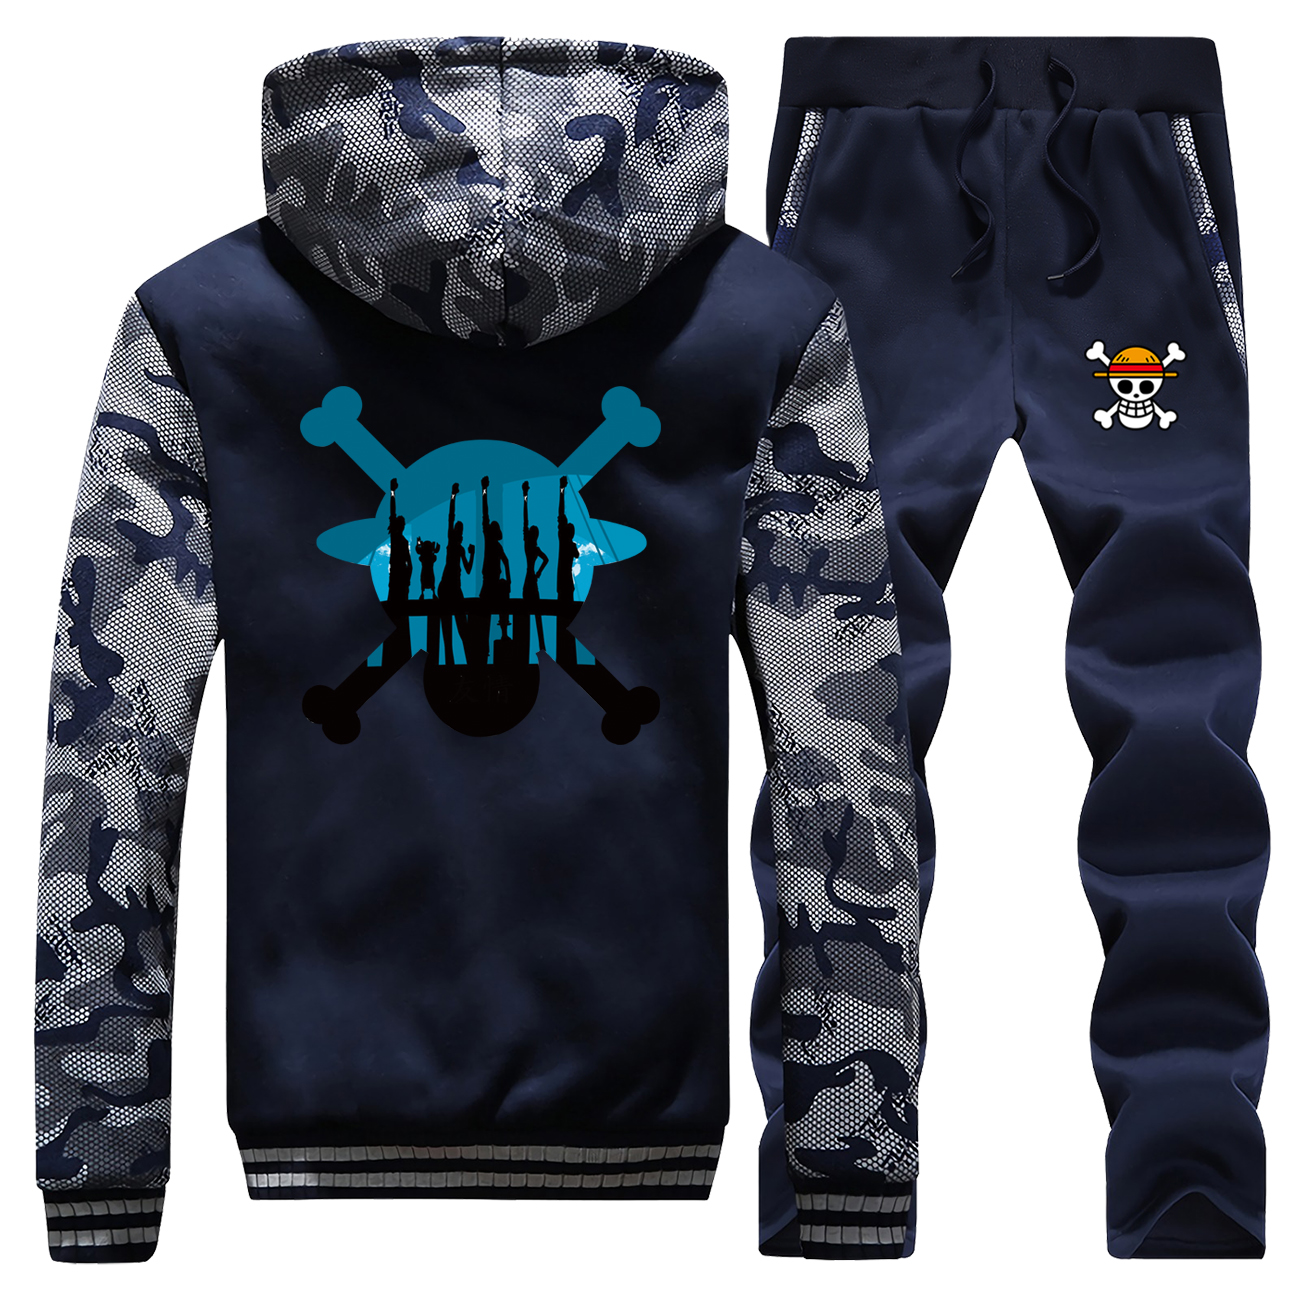 One Piece Thick Jacket Japanese Anime Harakuku Fashion Luffy Warm Tracksuit Camo Male Set Men Warm Fleece Men's Casual Warm Sets